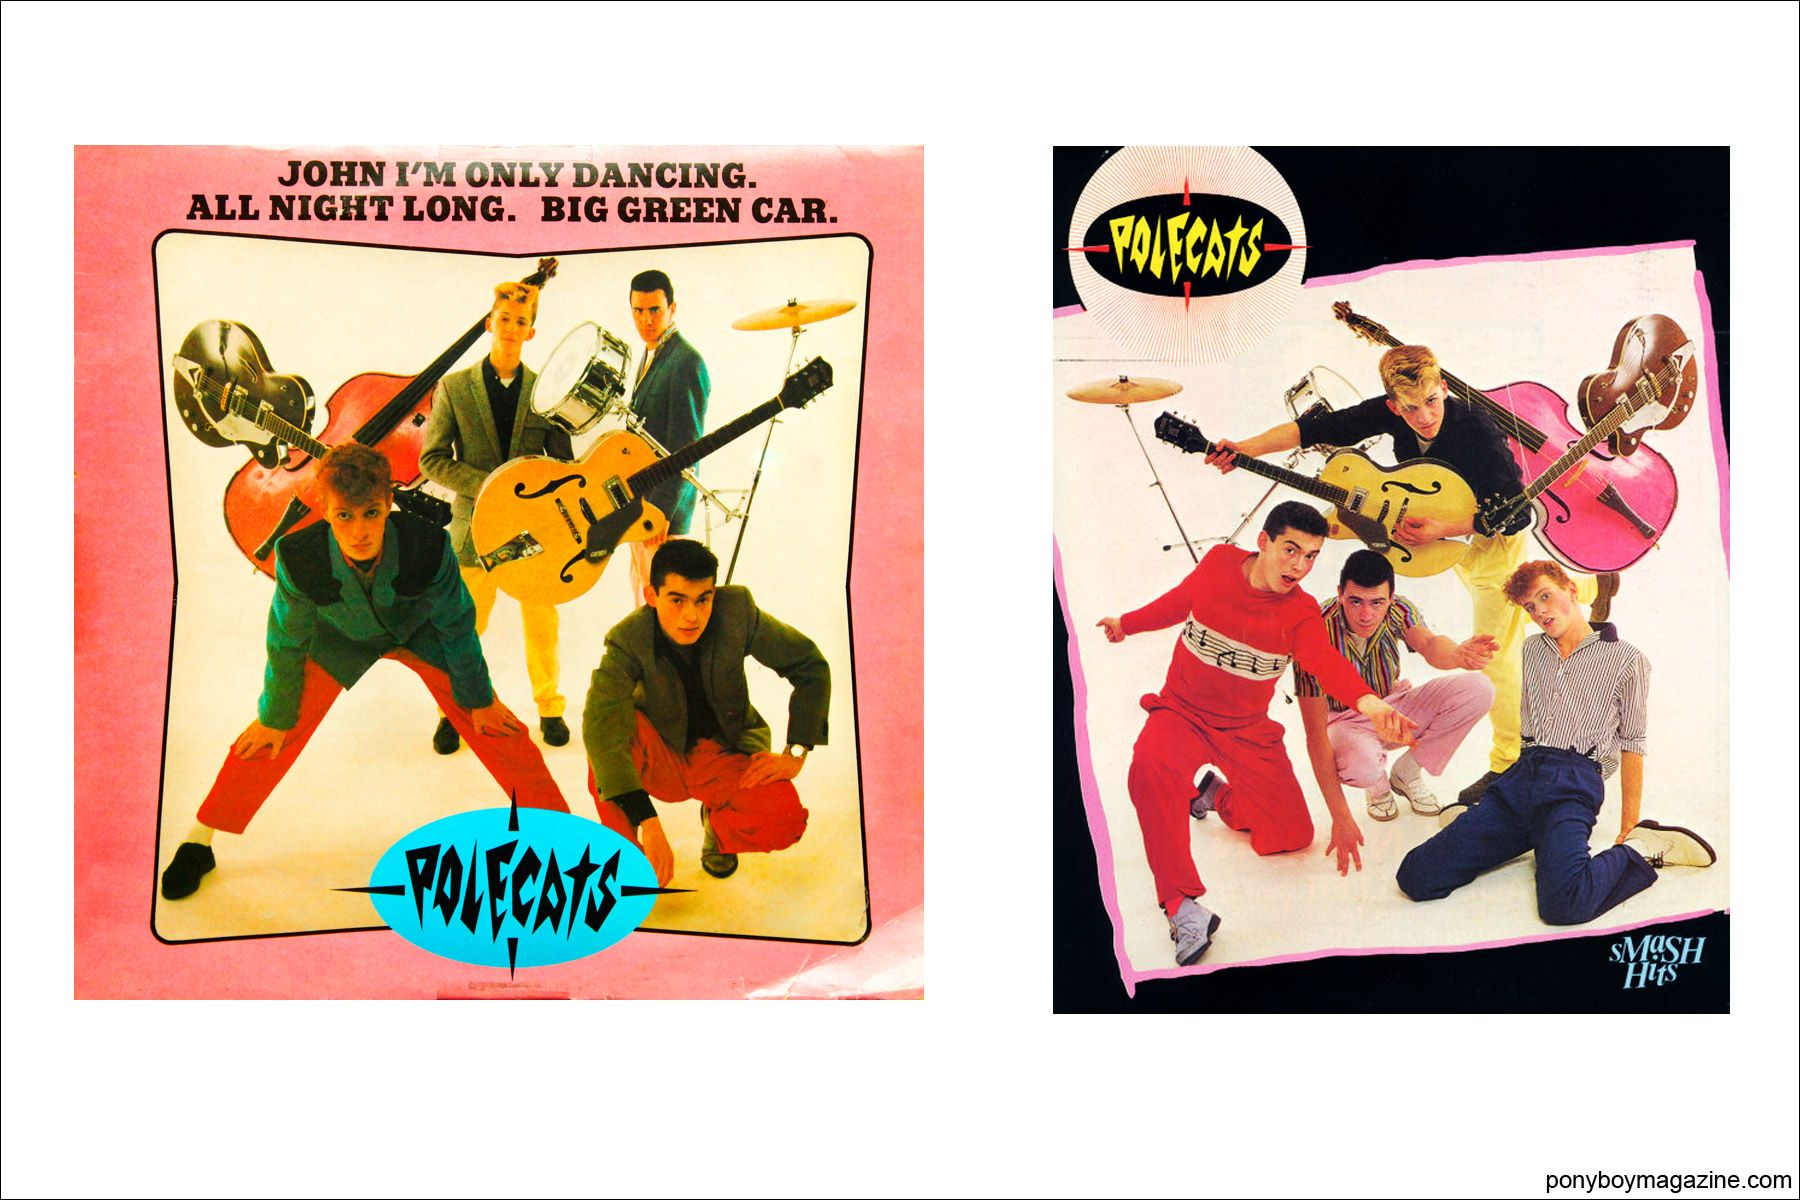 Colorful album covers of neo-rockabilly band Polecats. Ponyboy Magazine in New York City.